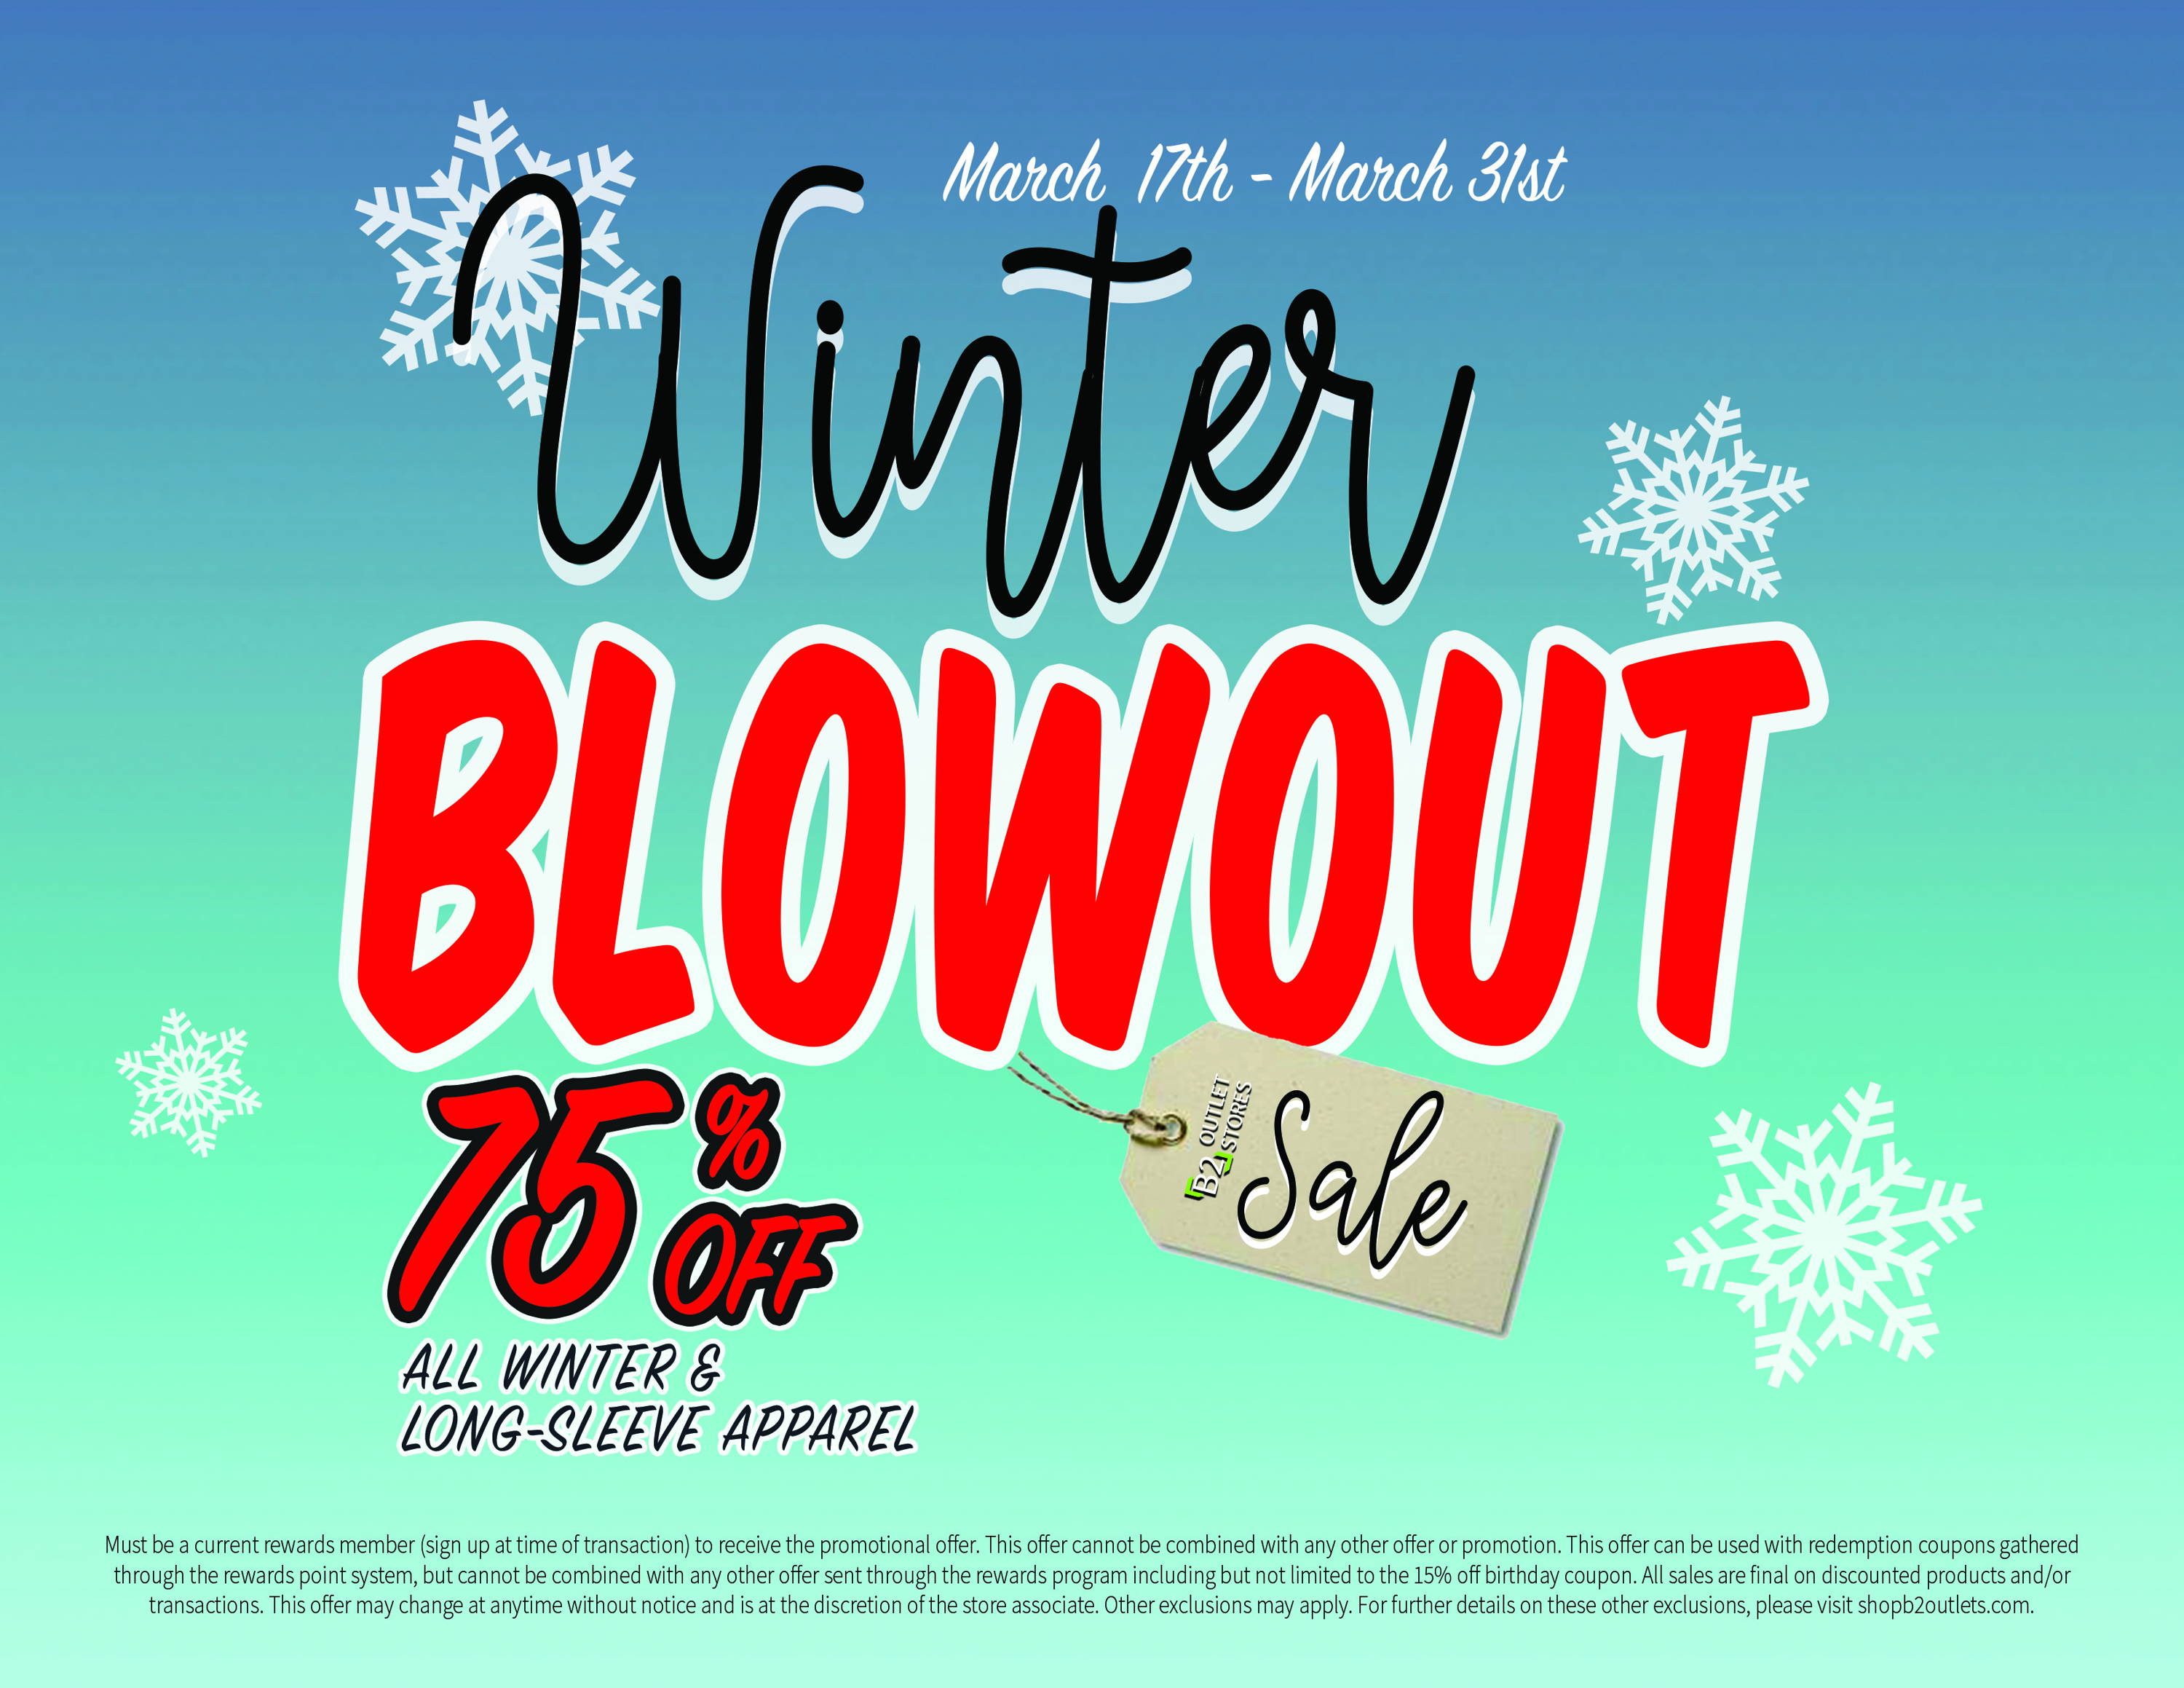 75% off offer, everything winter or long-sleeved is 75% off, b2 outlet stores